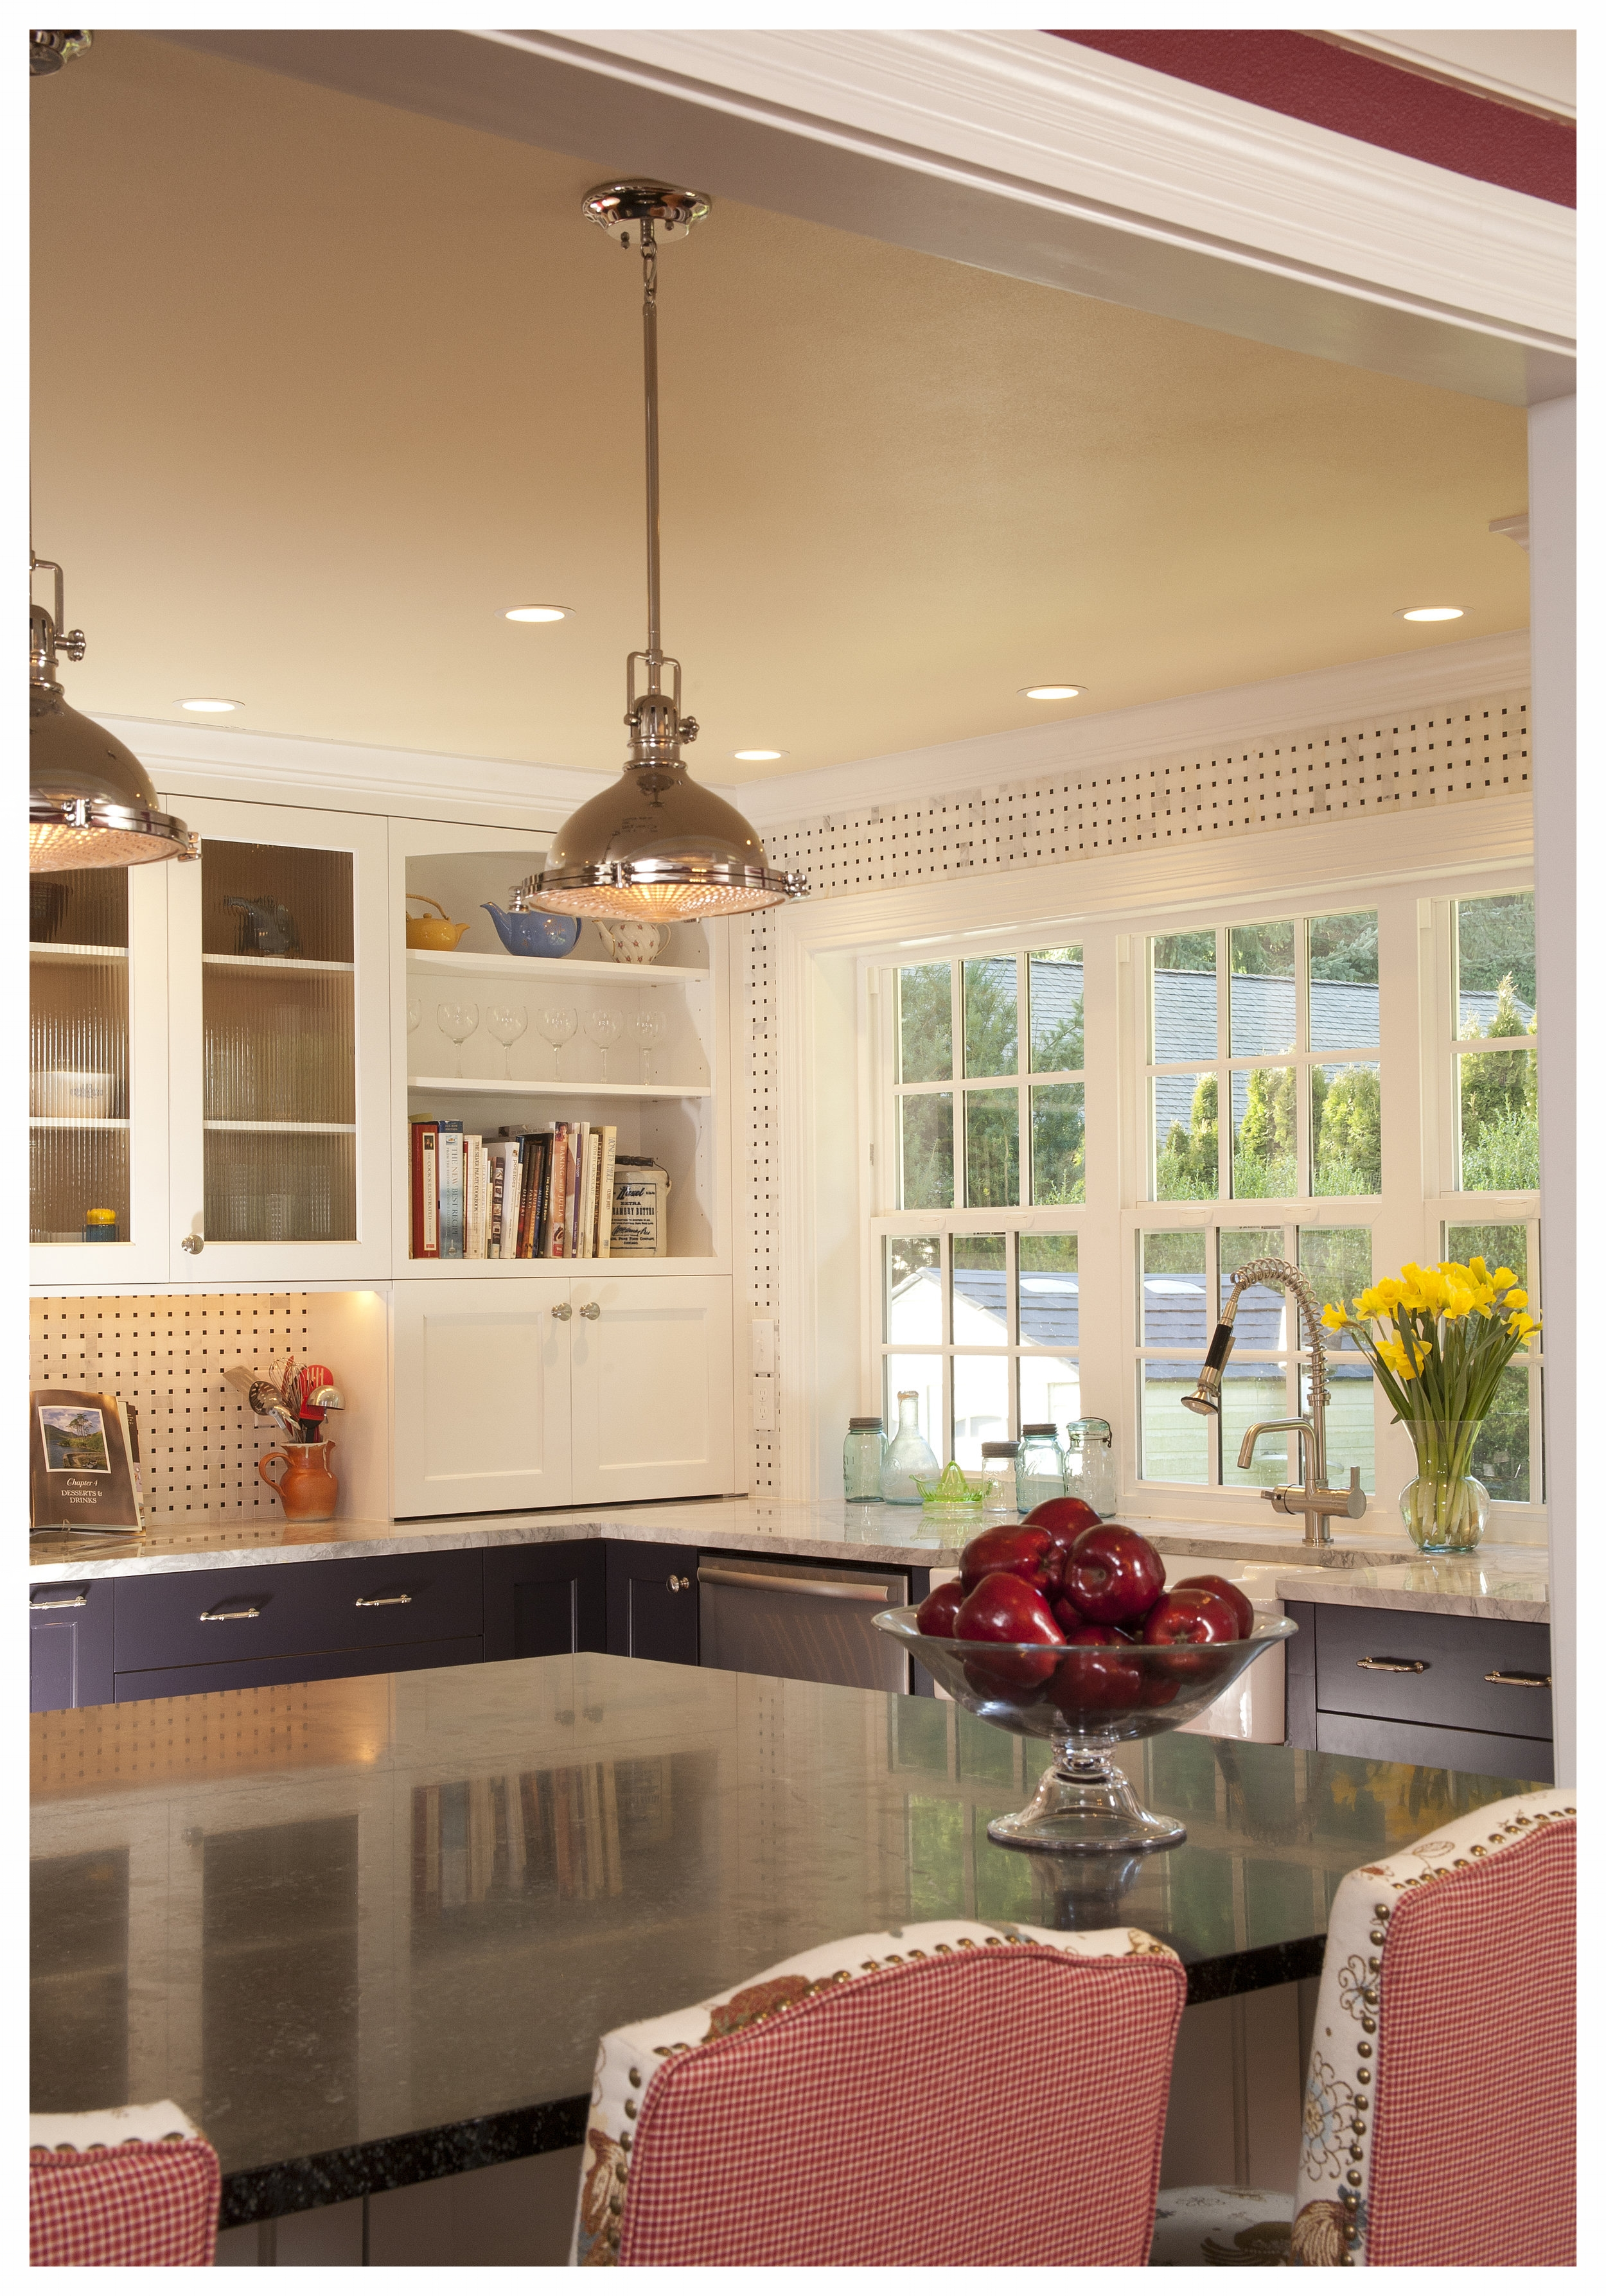 Woodiville Country Kitchen 10.jpg